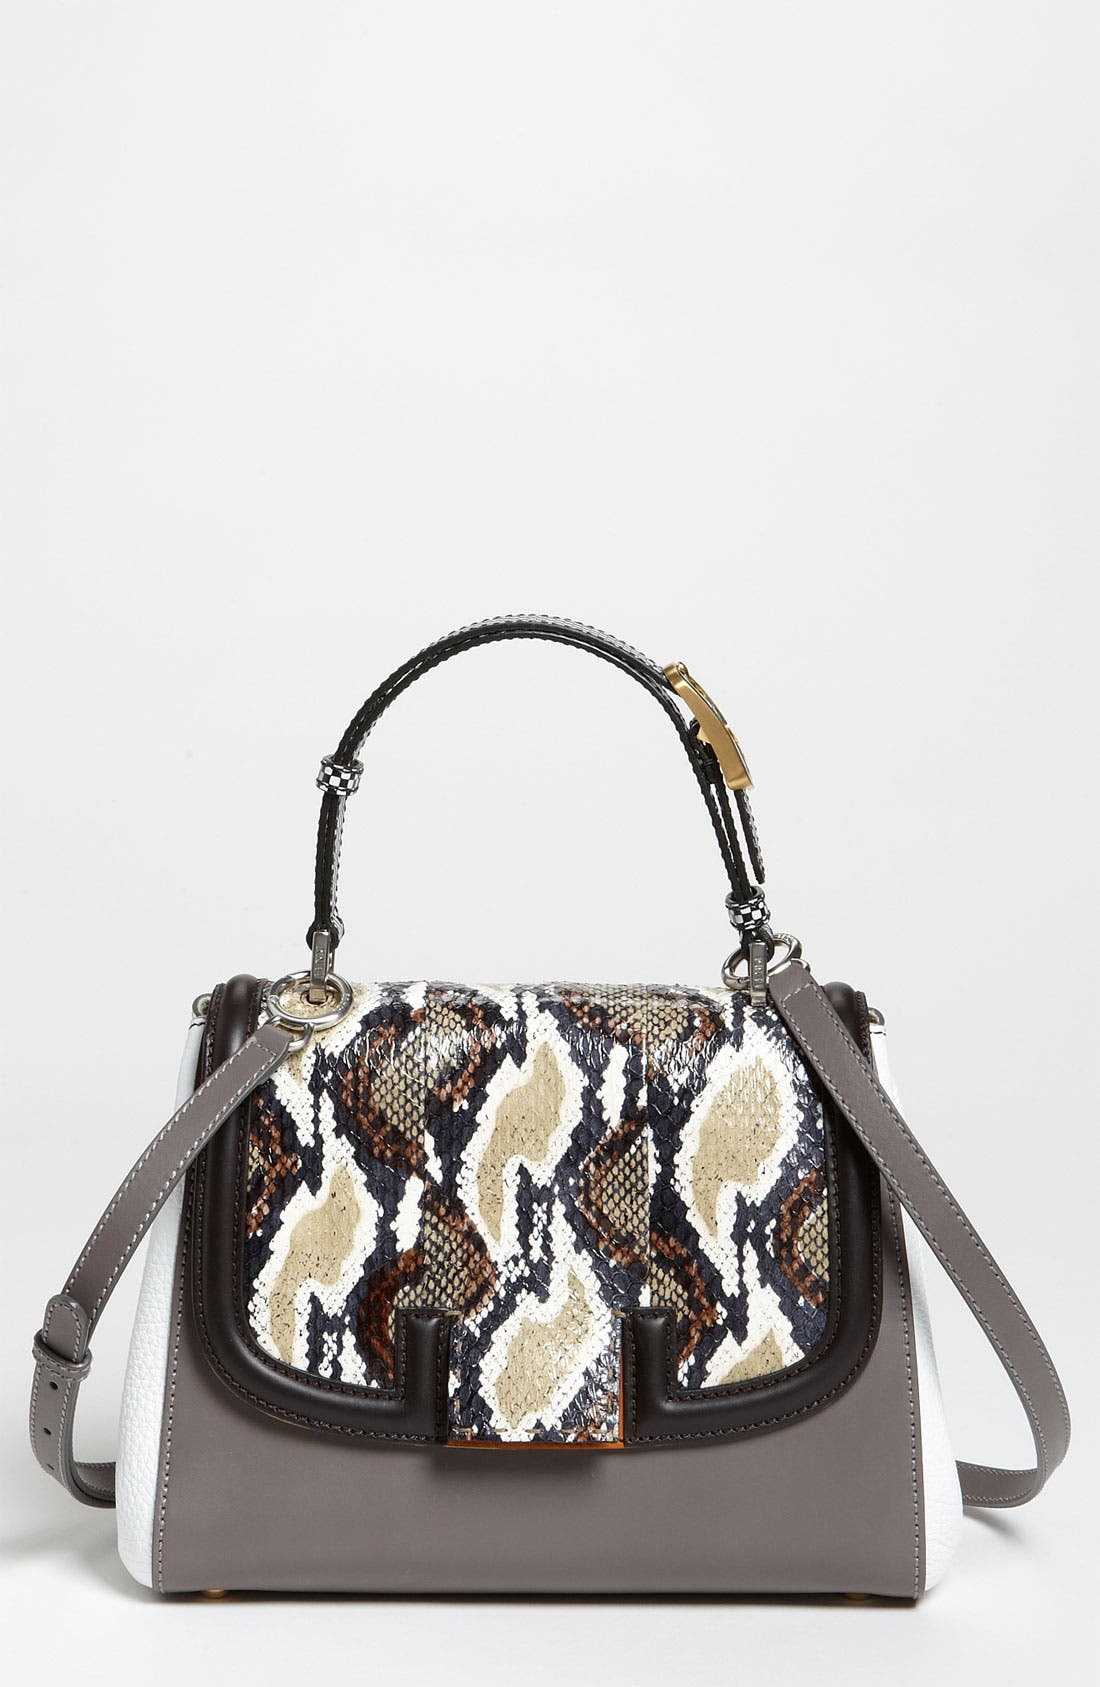 Alternate Image 1 Selected - Fendi 'Silvana Elaphe Fantasy' Leather & Genuine Snakeskin Satchel